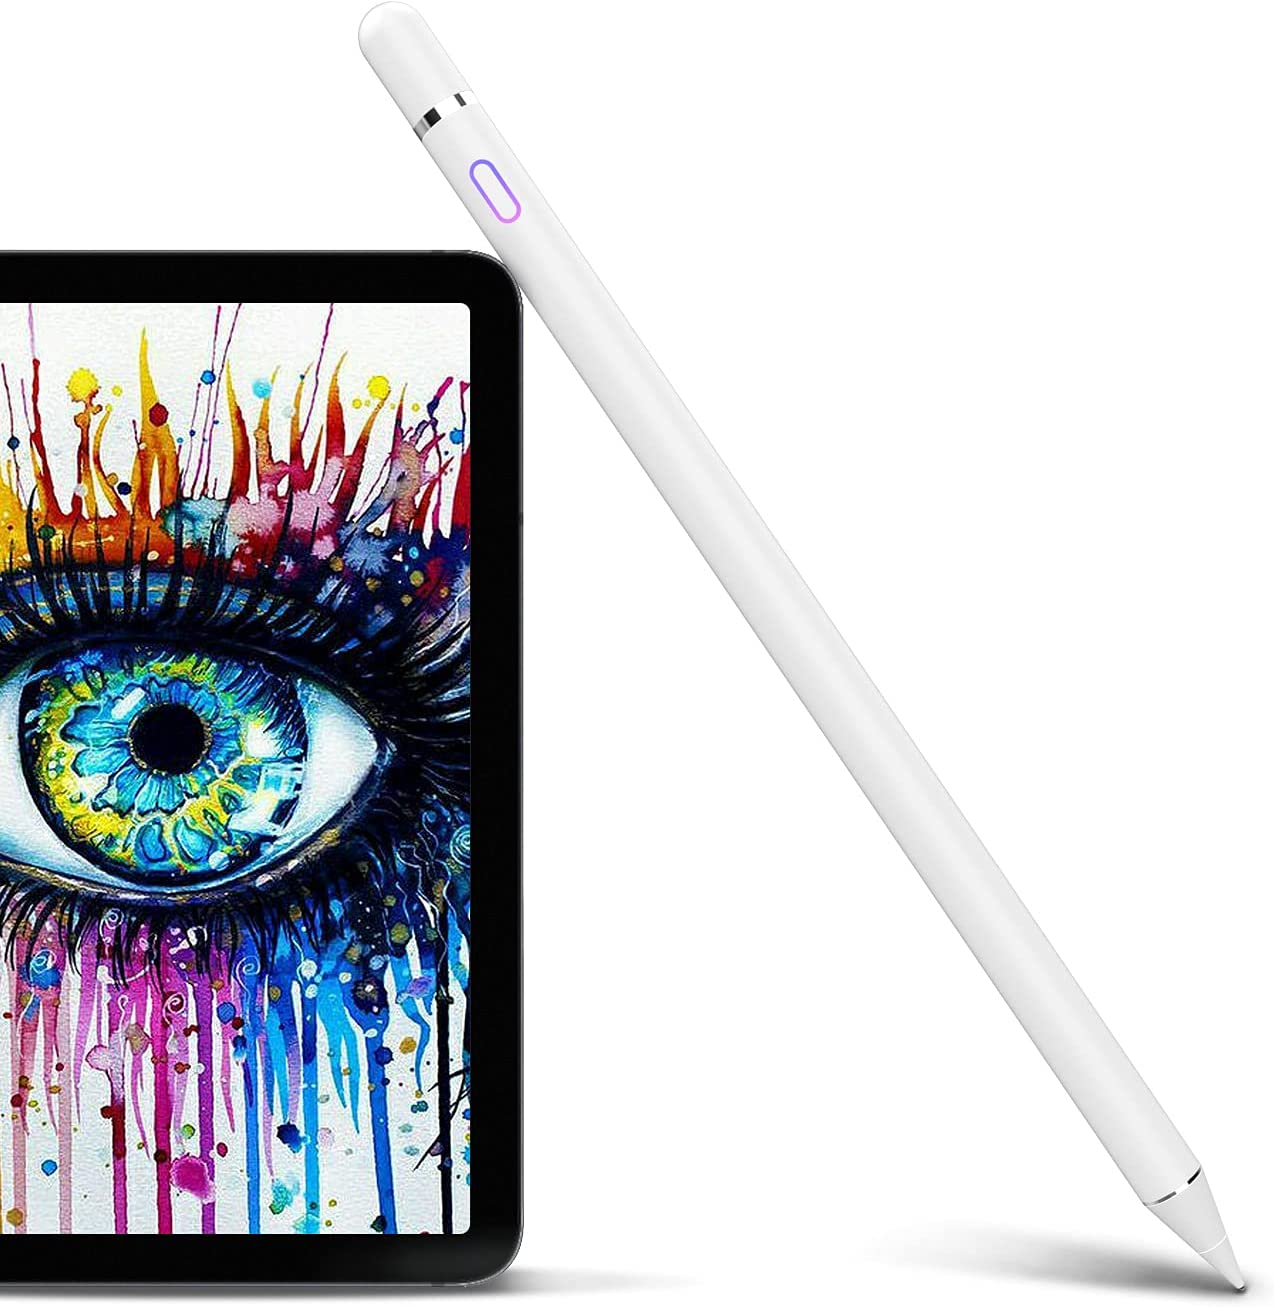 Stylus Pen Compatible with iPad, Pencil Styluses Compatible with iPad 2/3/4/5/6/7/8 Generation Pro 9.7/10.5/11/12.9 Air 1/2/3/4 Mini 1/2/3/4/5 Alternative Drawing Smart Stylist for Touch Screens